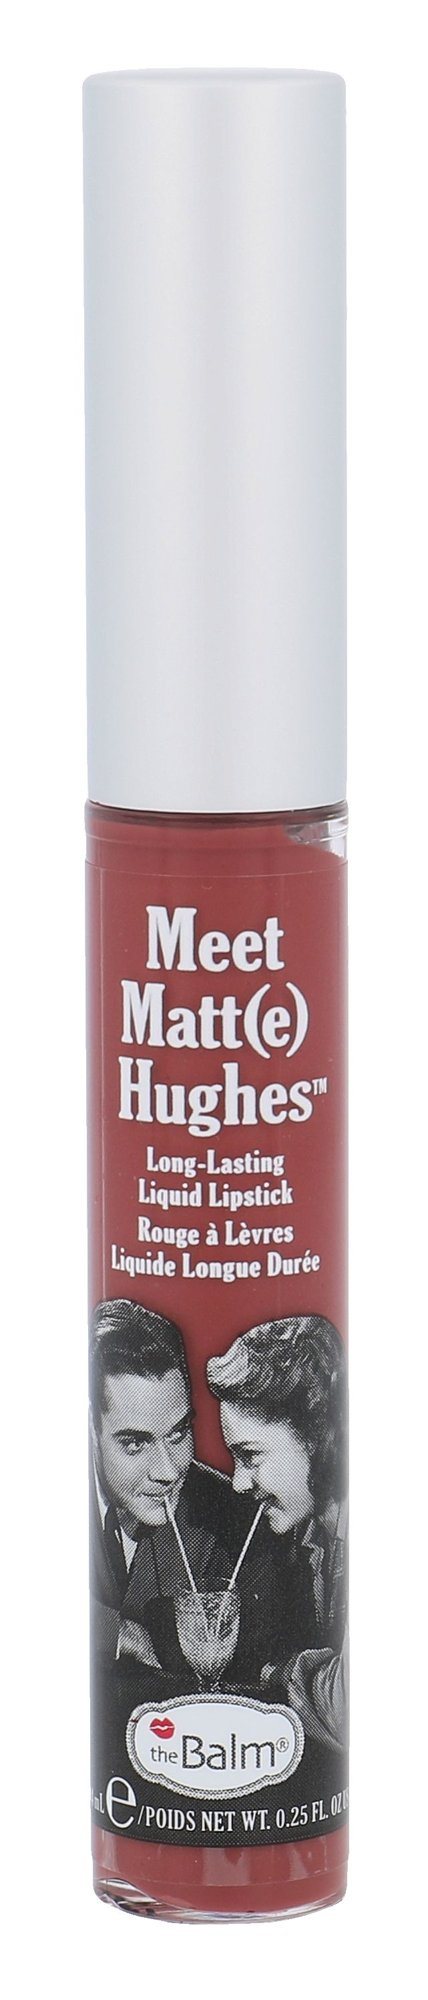 TheBalm Meet Matt(e) Hughes Cosmetic 7,4ml Charming